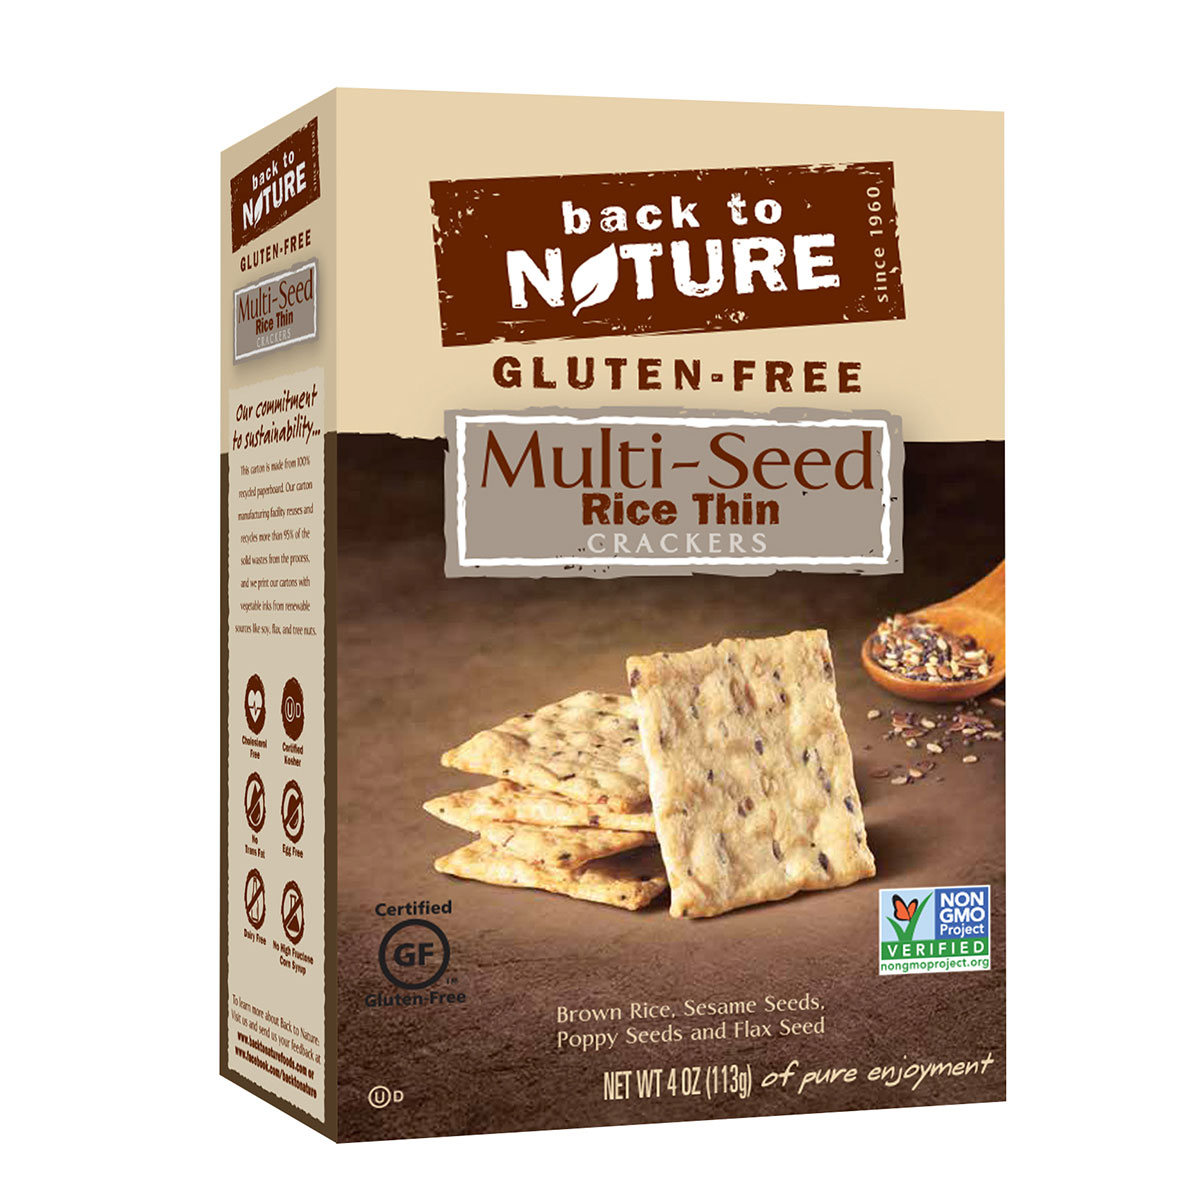 Back to Nature Foods Back To Nature Gluten Free Rice Thin Crackers, Multi - Seed, 4 Oz